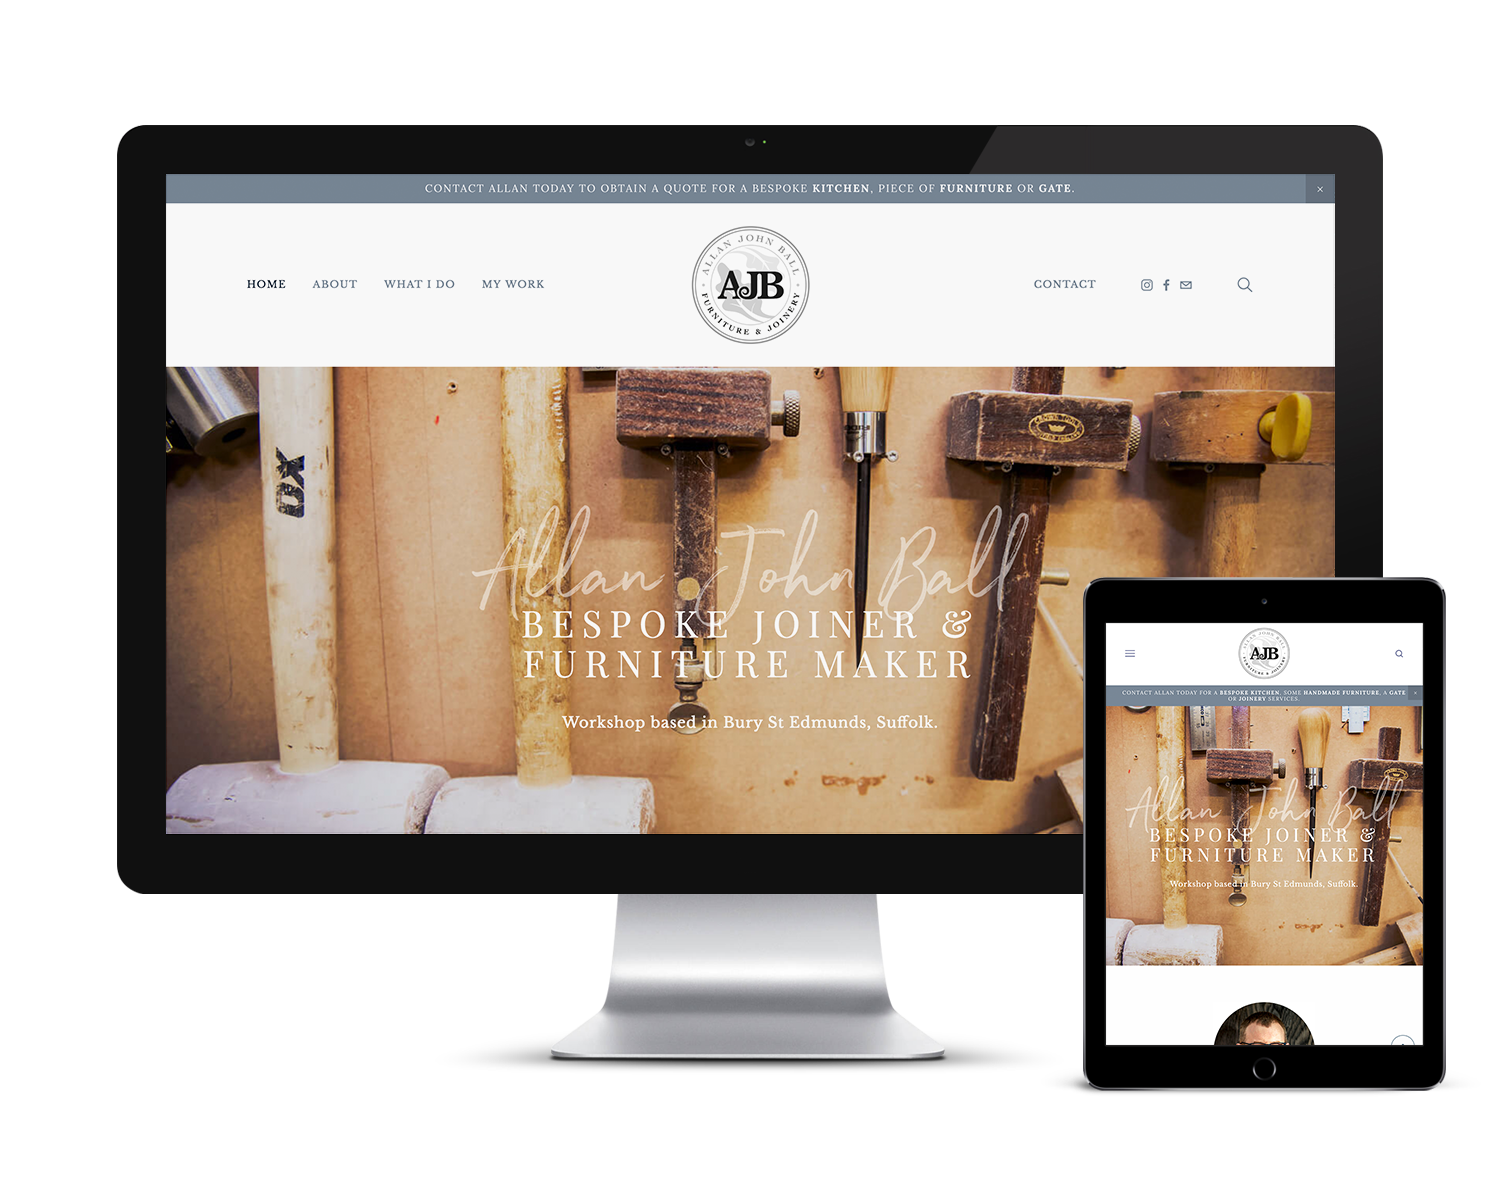 Image of the AJB Joinery Website Design on a desktop computer and iPad.